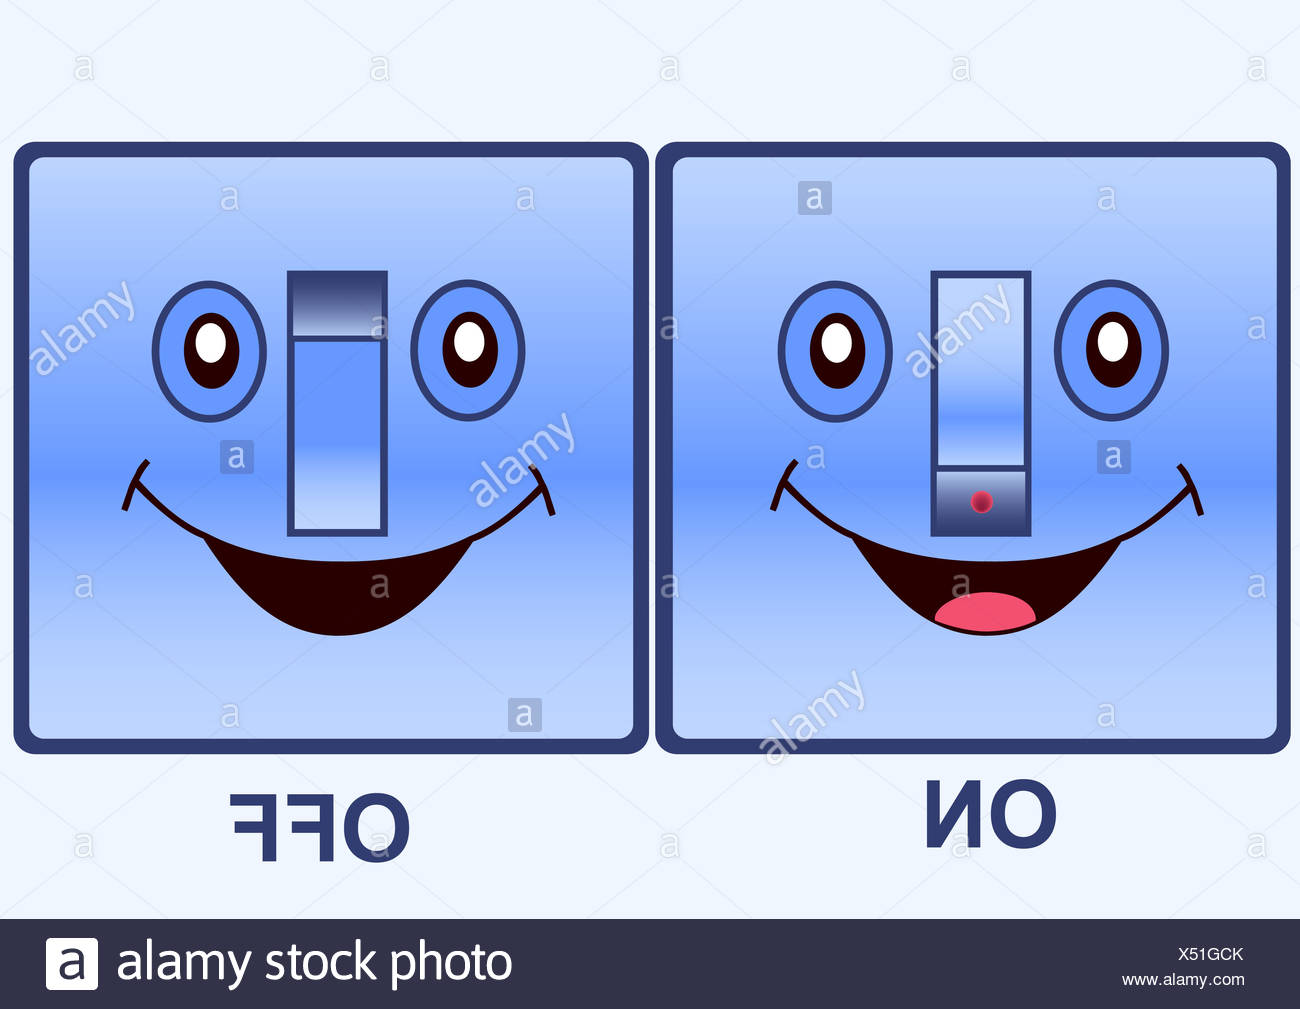 Cartoon Light Switch Stockfotos & Cartoon Light Switch Bilder - Alamy